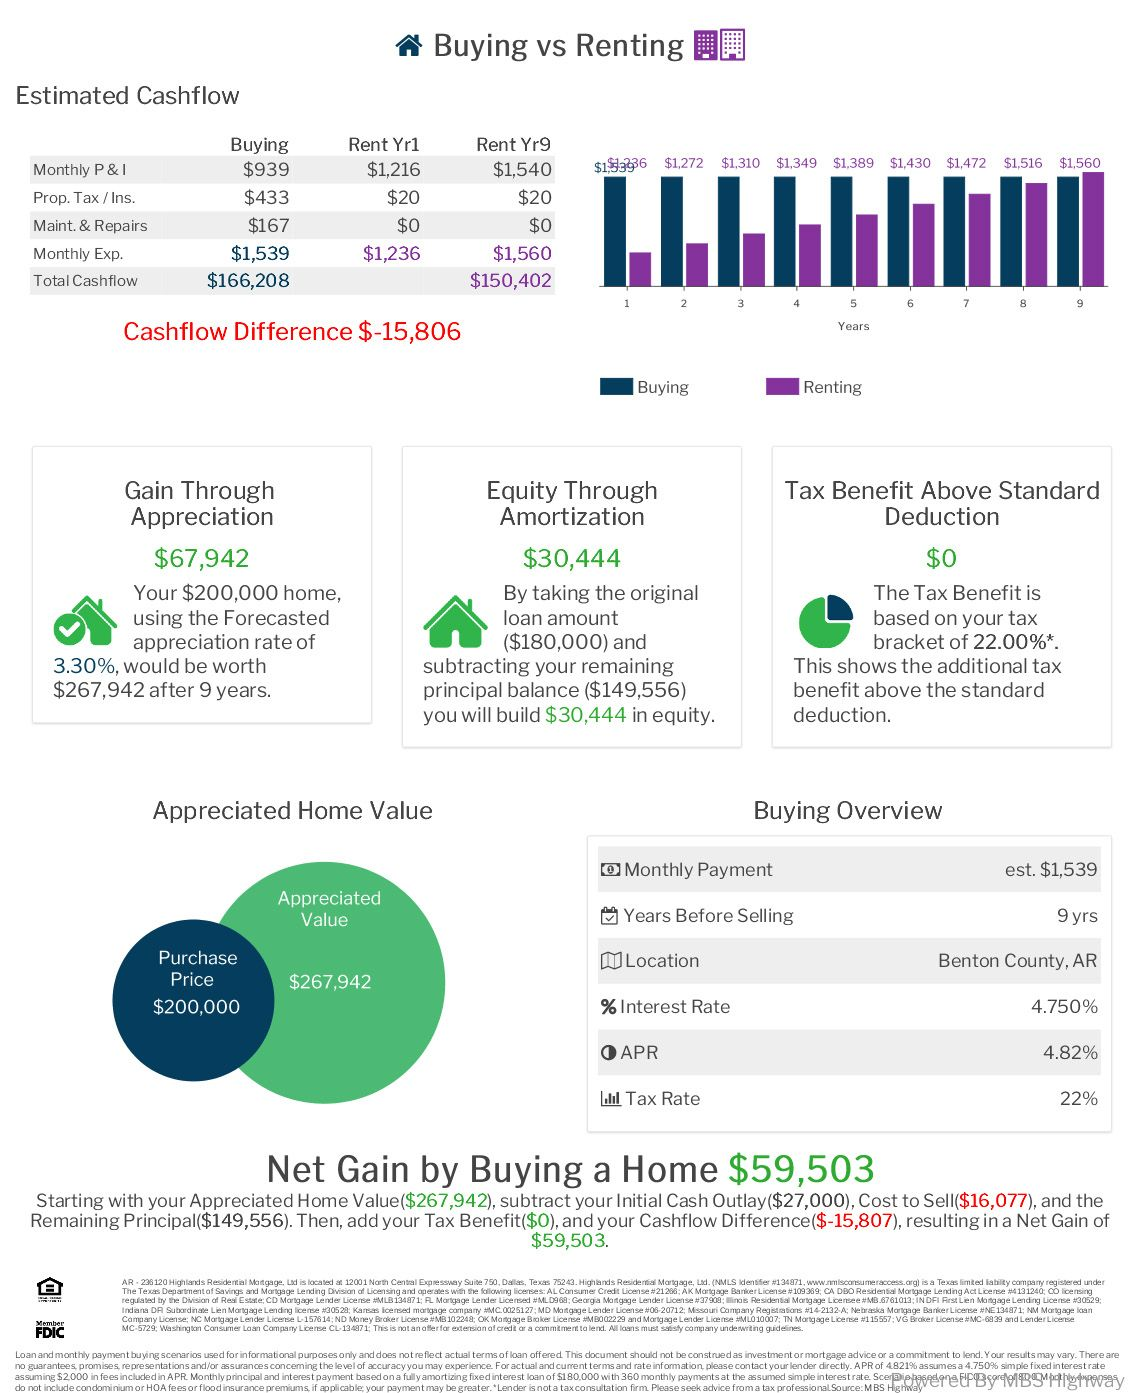 Statistics show that buying a house is more beneficial  The net gain